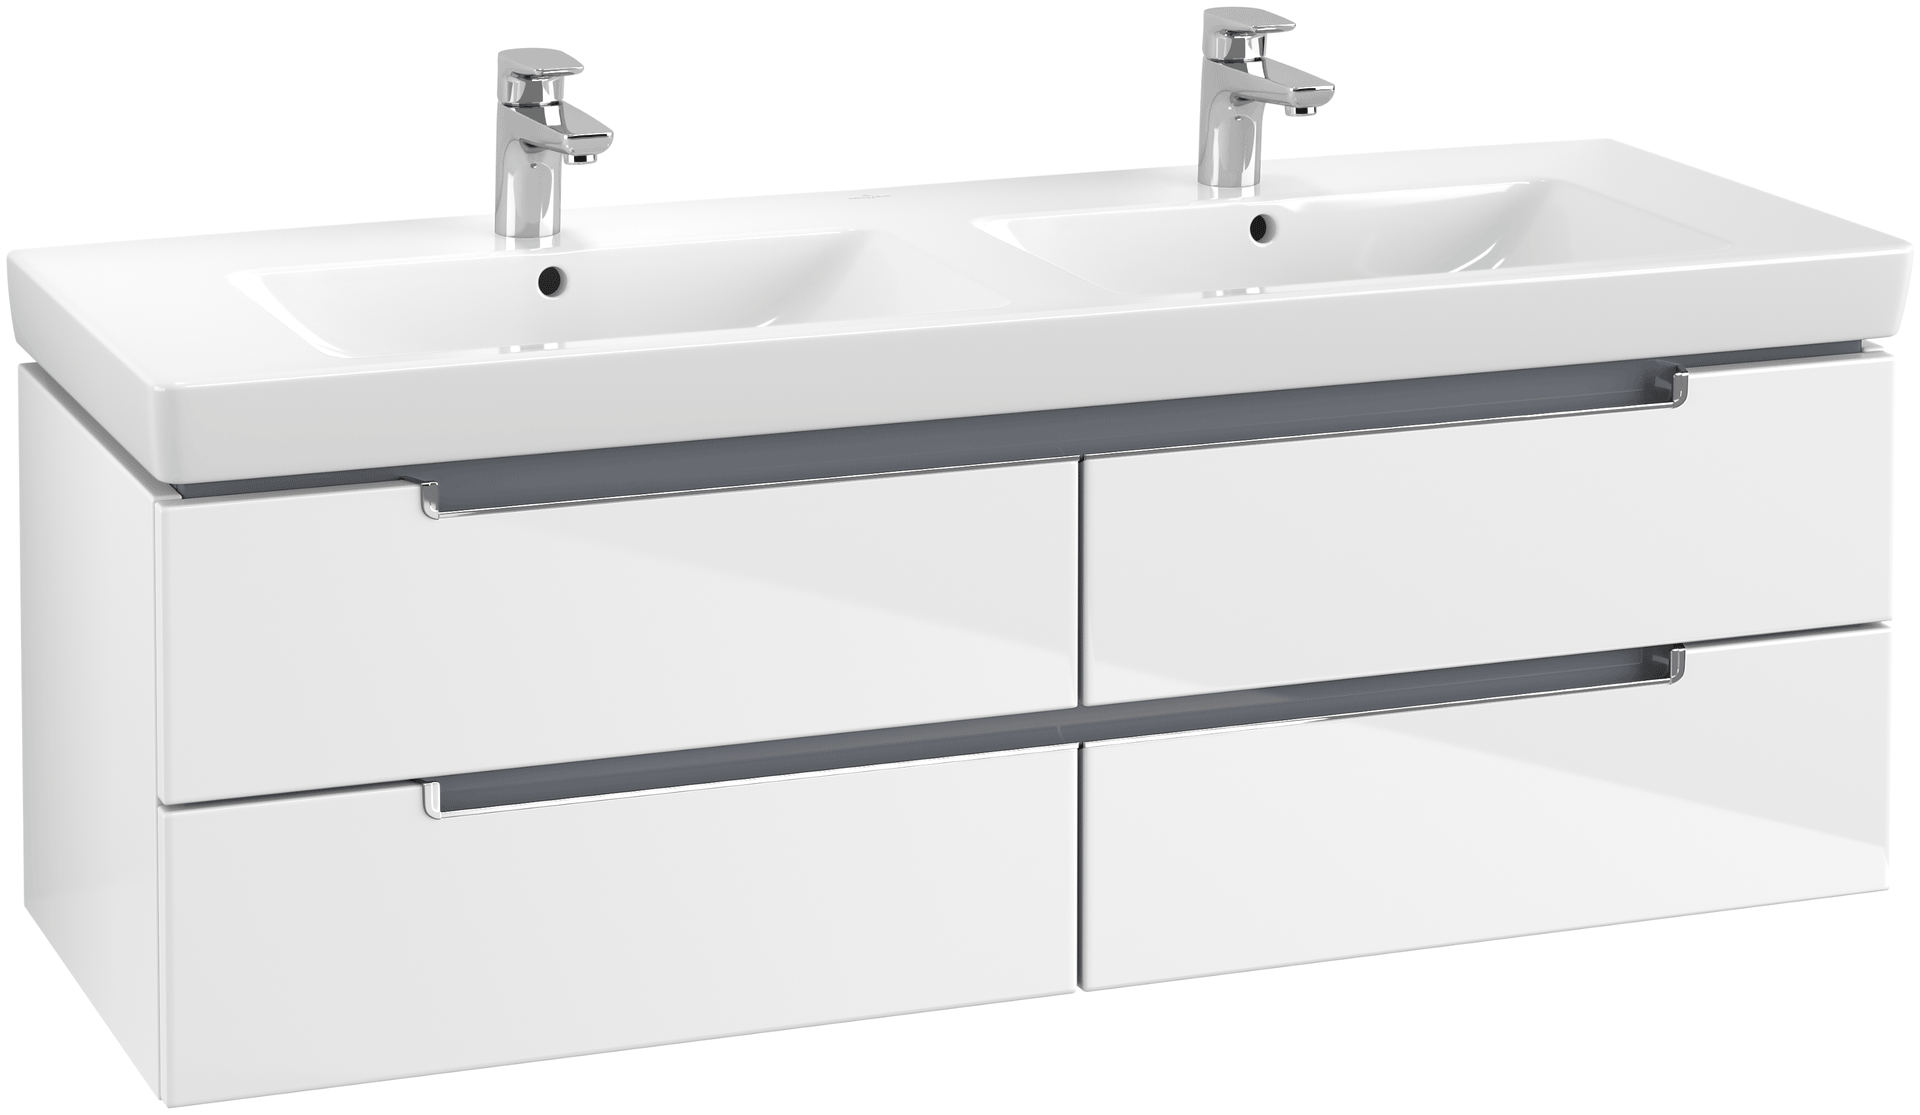 Doppelwaschtisch Villeroy Boch Subway 2.0 Villeroy Boch Subway 2 Vanity Unit 1287 With 4 Drawers